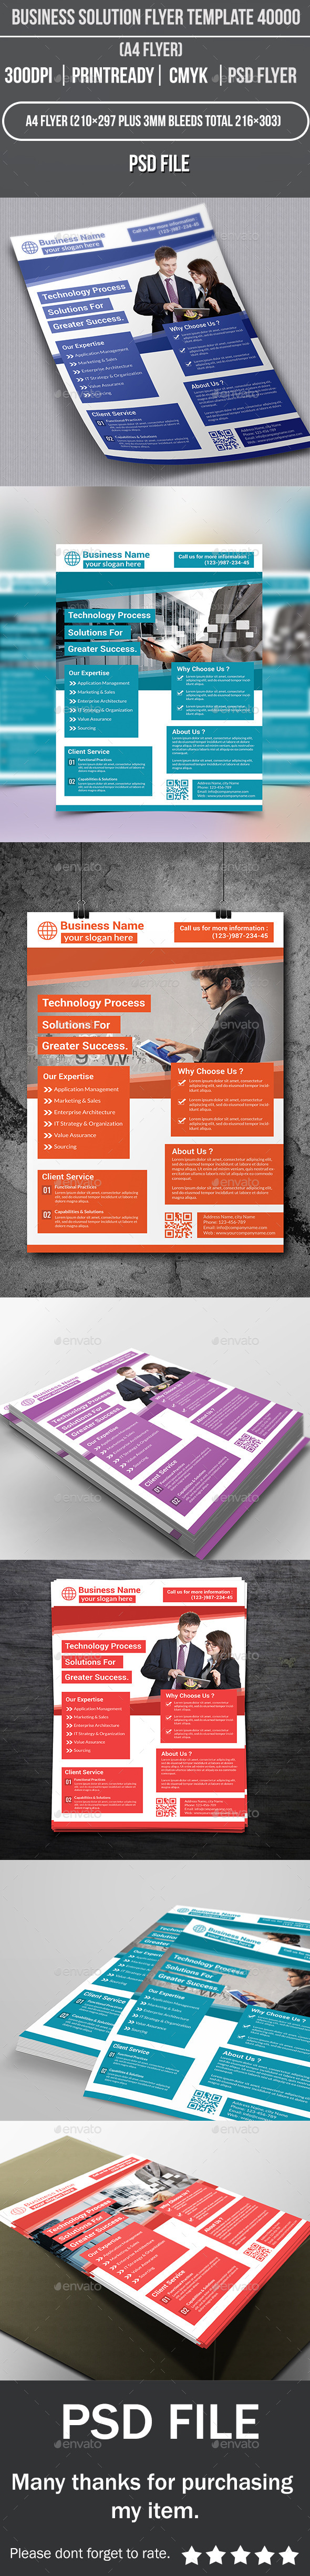 Business Solution Flyer Template 40000 - Corporate Flyers